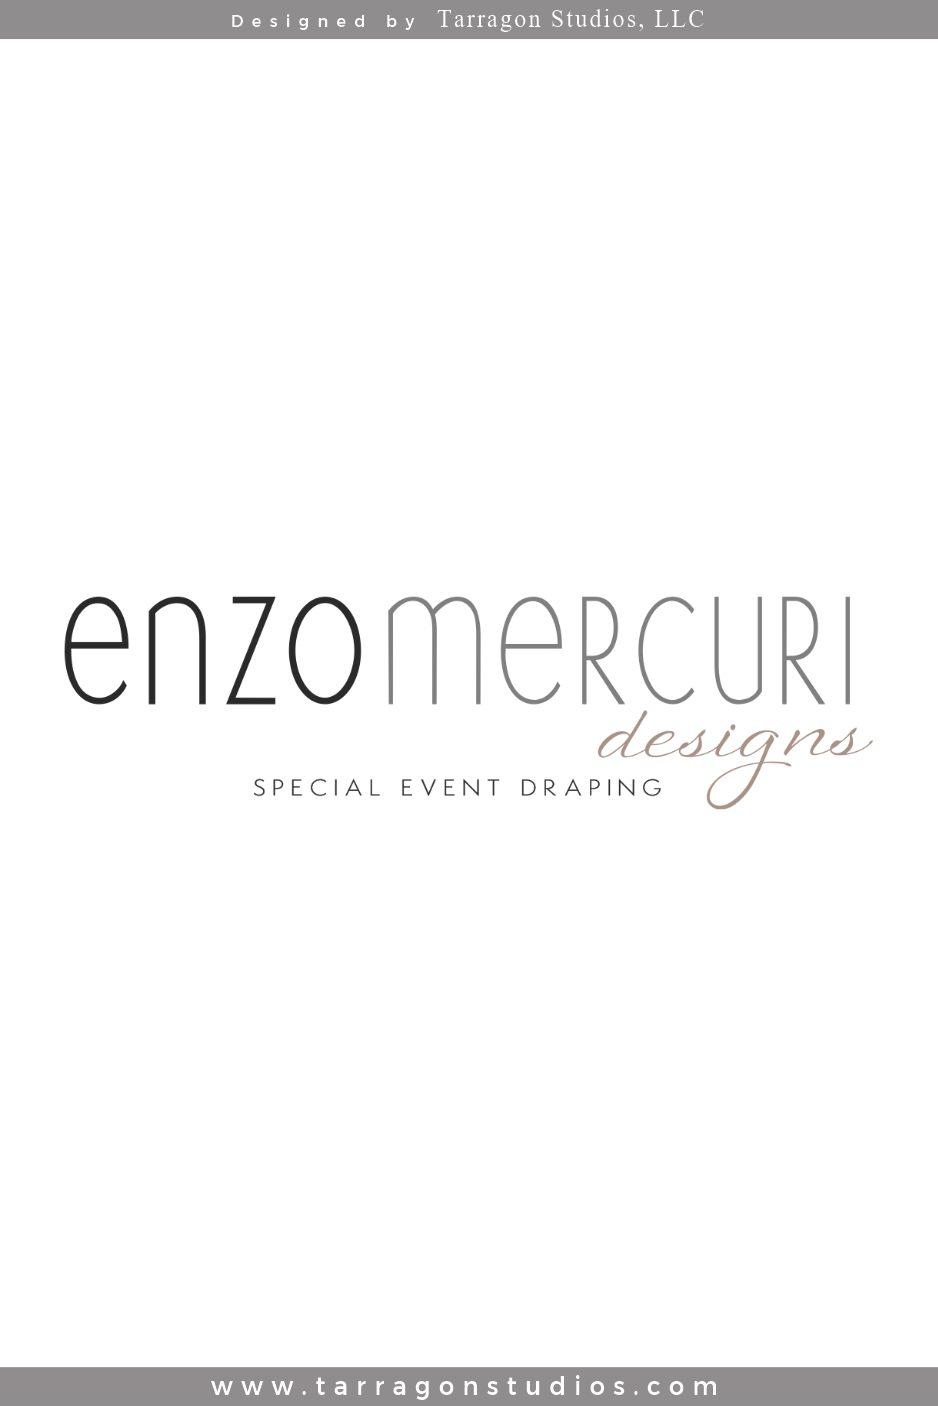 Refined, quirky, fun, chic, stylish logo and brand for Enzo Mercuri Designs, Special Event Draping by Tarragon Studios. Keep Reading to see all the unique, up-scale custom event inspired logo variations! #logo #design #chic #unique